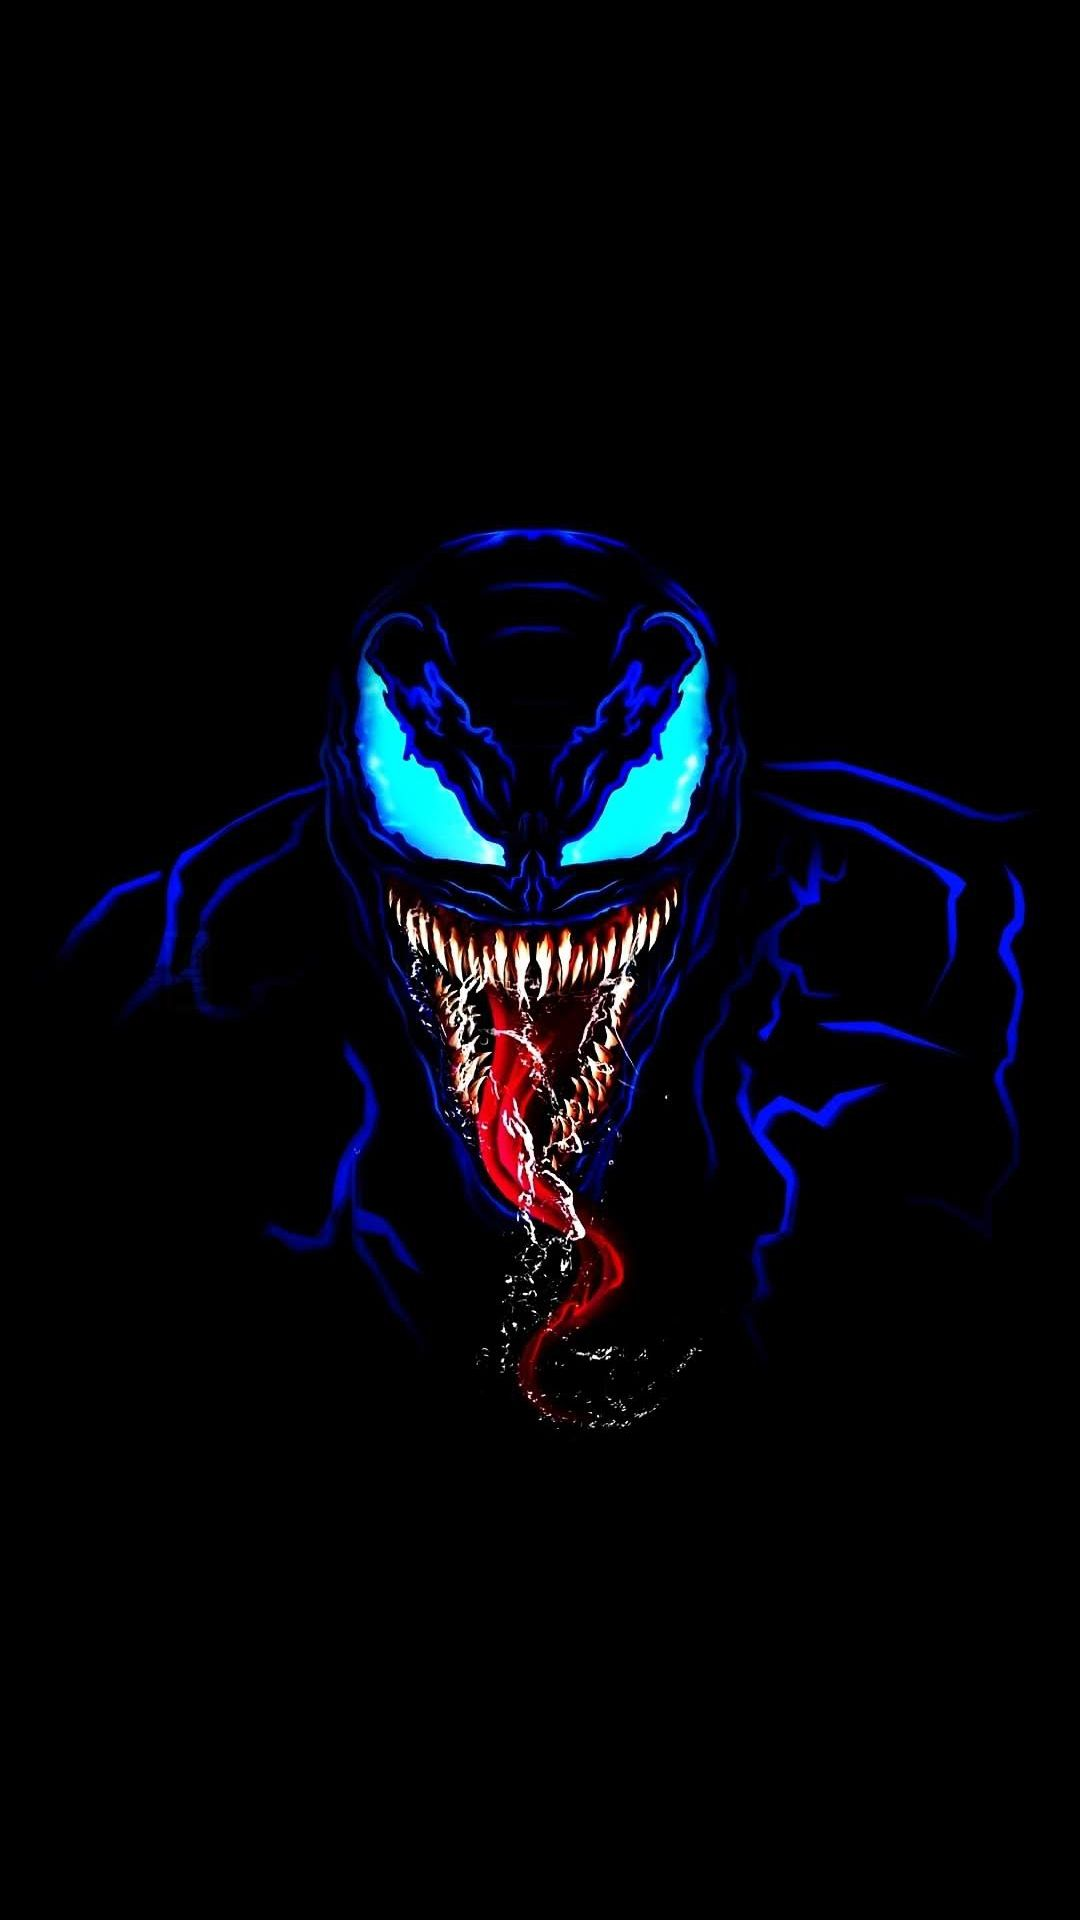 Venom in dark iphone wallpaper wlp marvel marvel - Venom hd wallpaper android ...